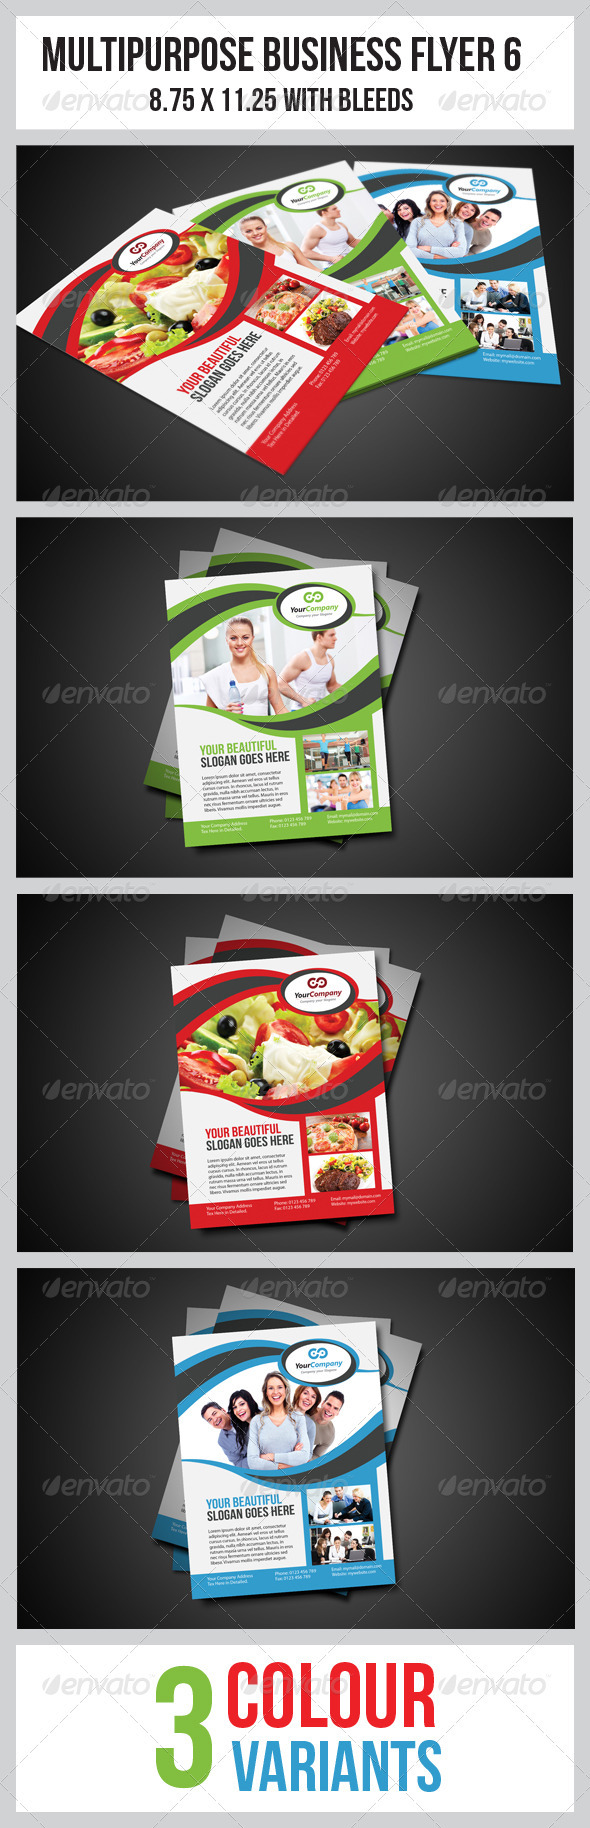 Multipurpose Business Flyer 6 - Corporate Flyers